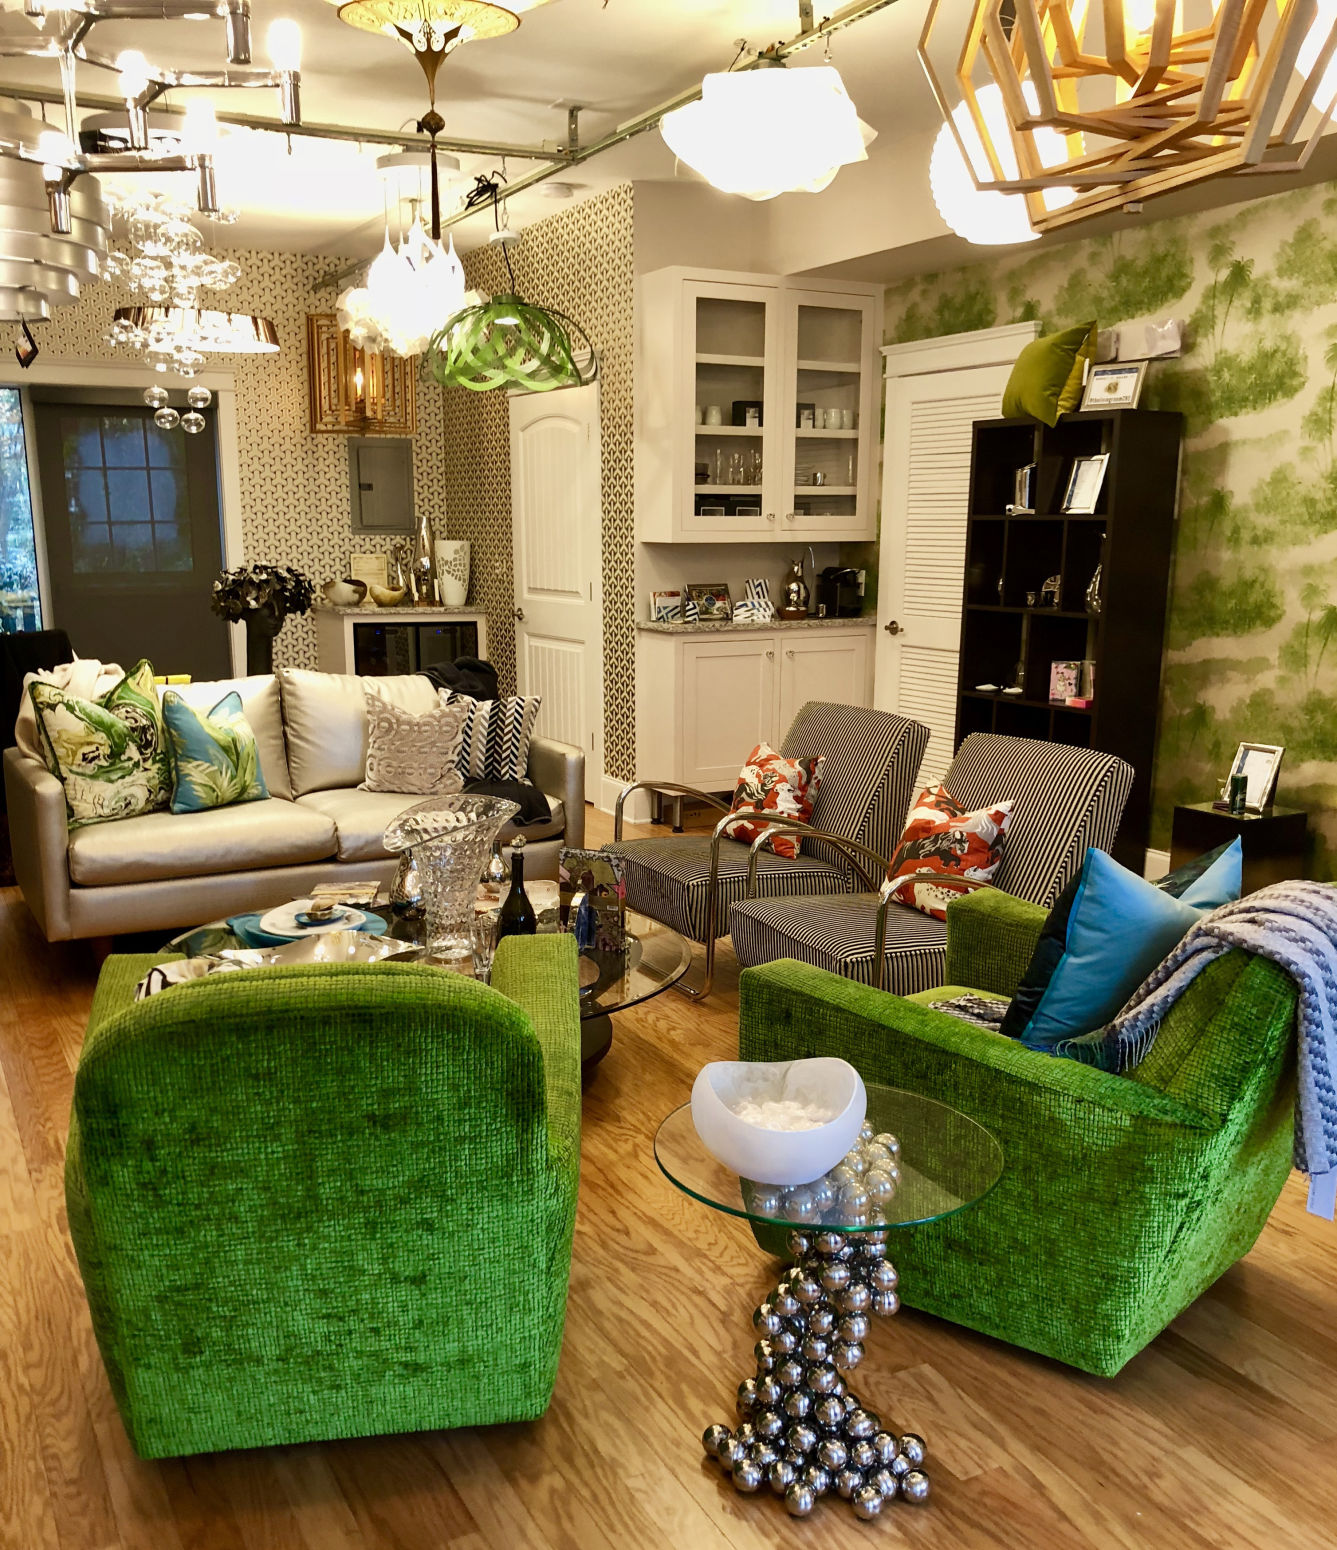 The Living Room In Mount Pleasant Is The Design Space For Karen Alagna.